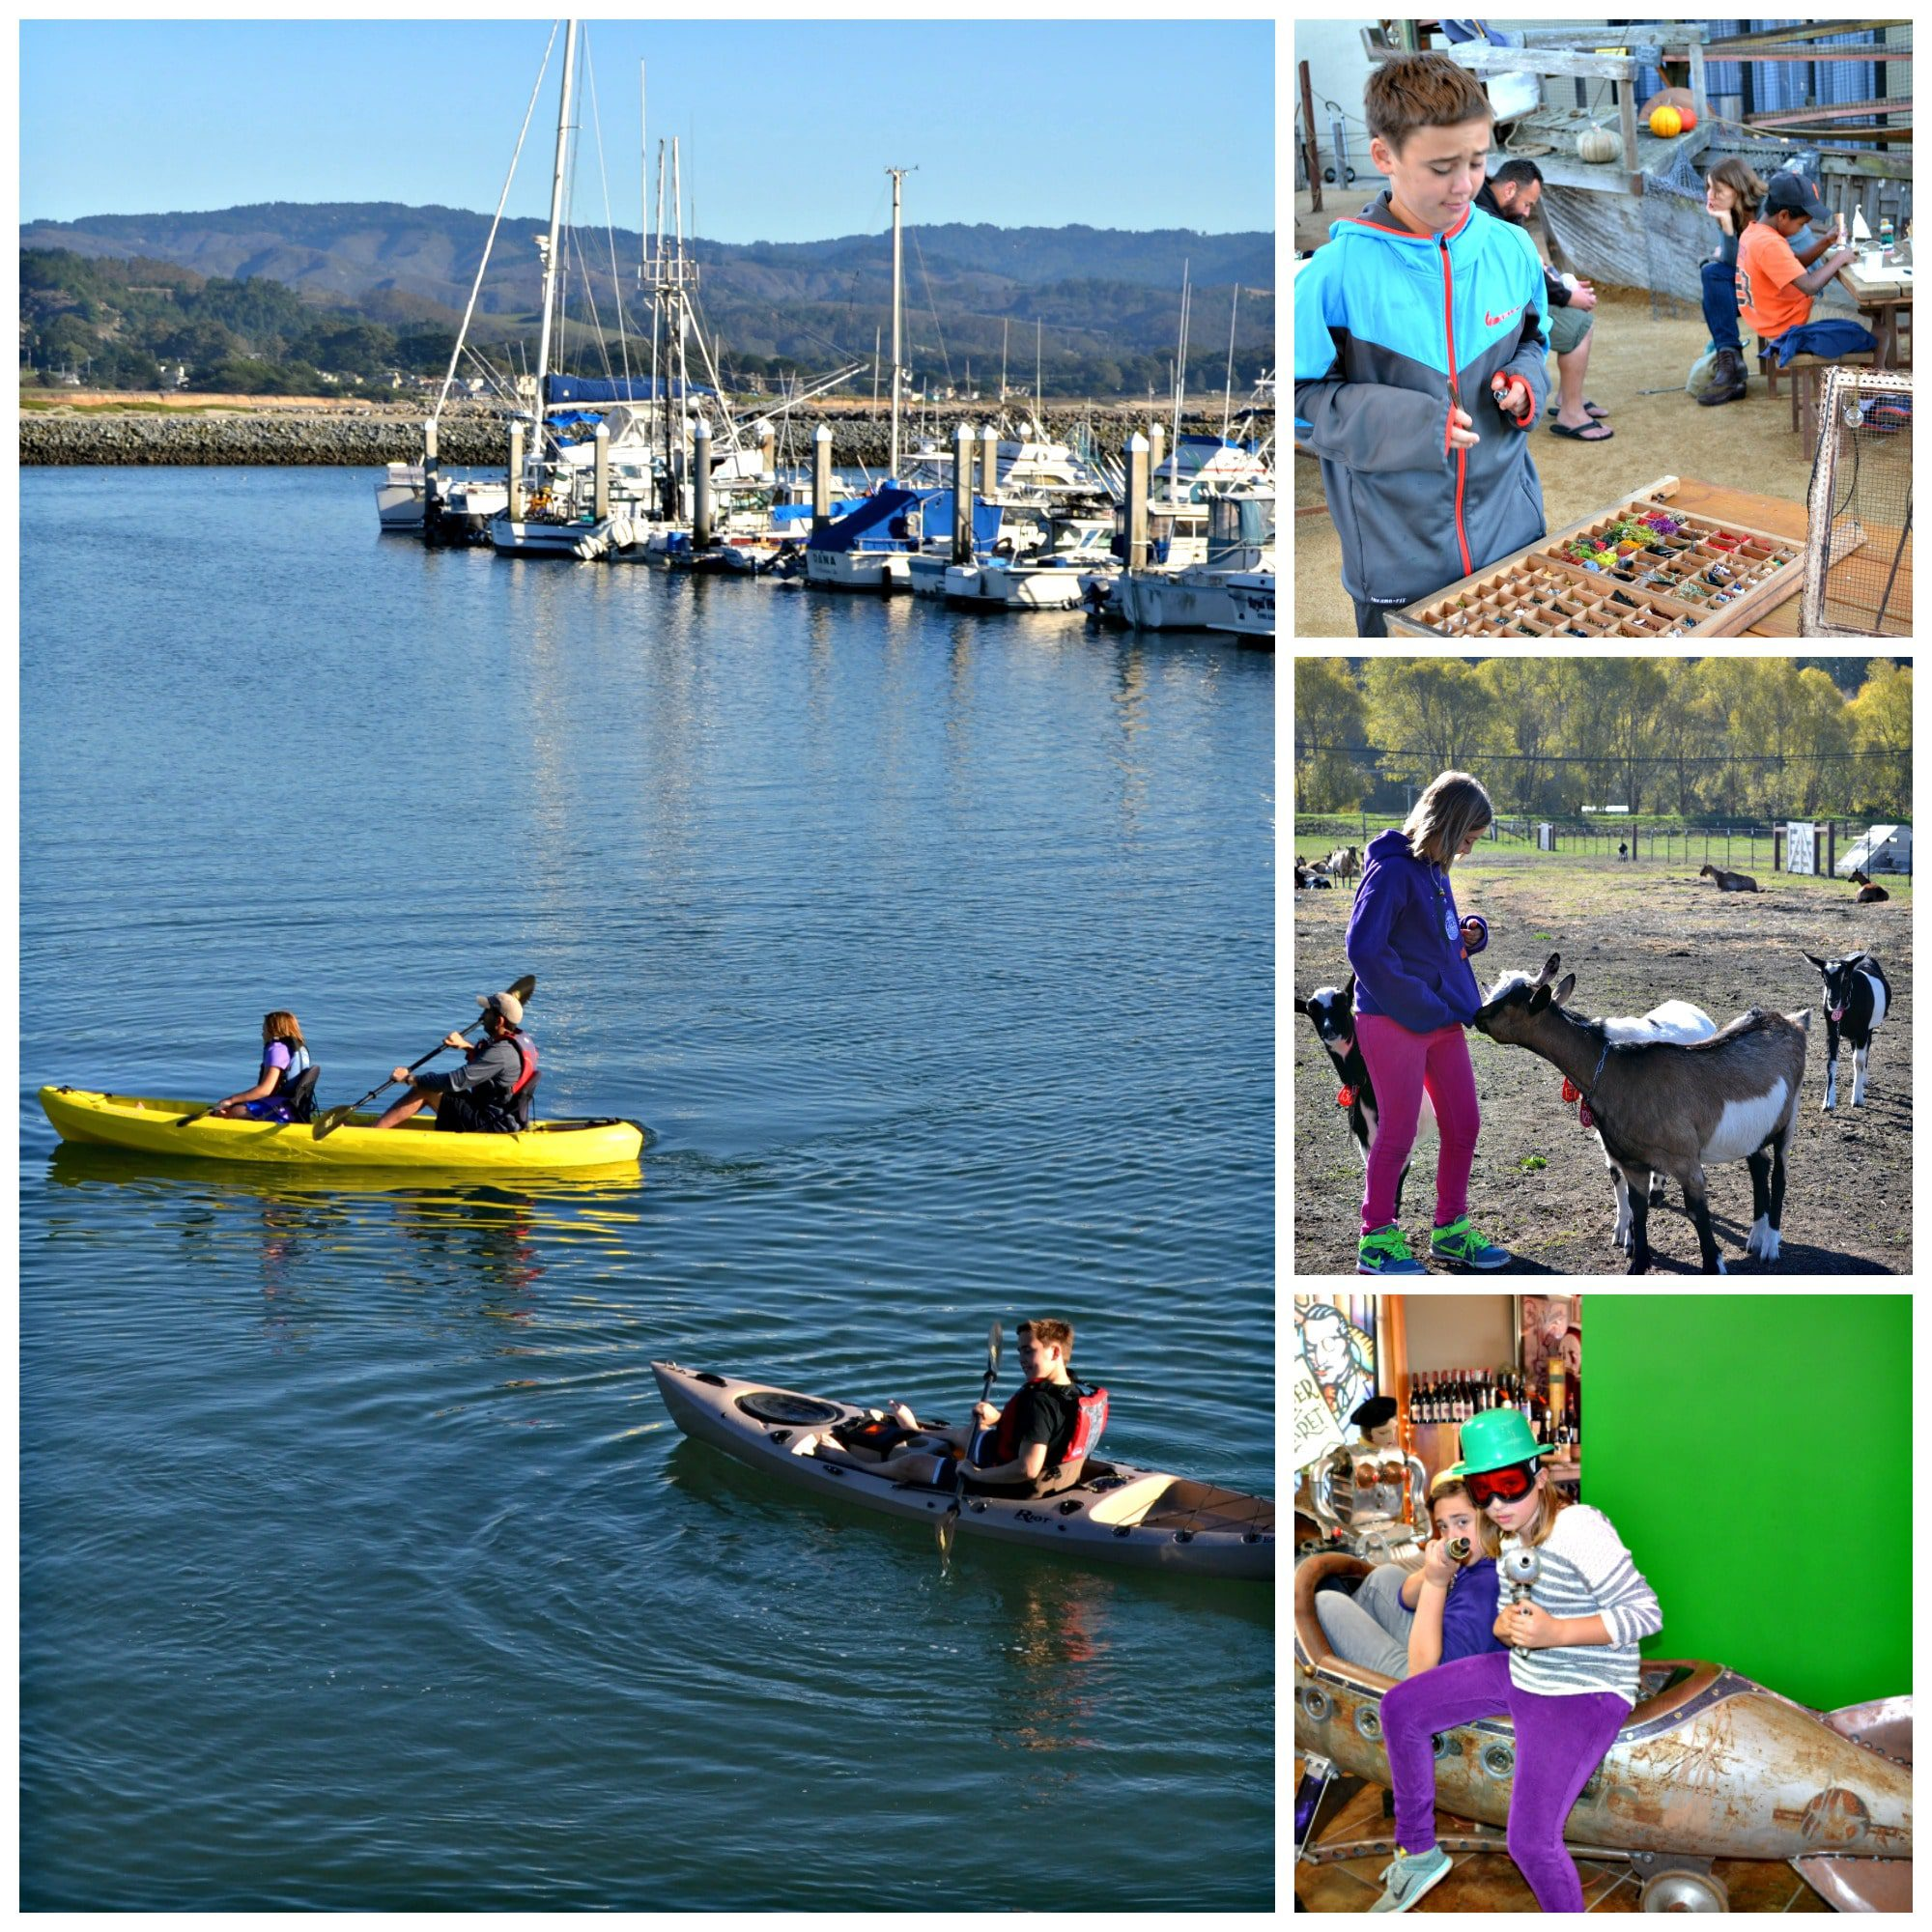 Half Moon Bay is full of adventures for families